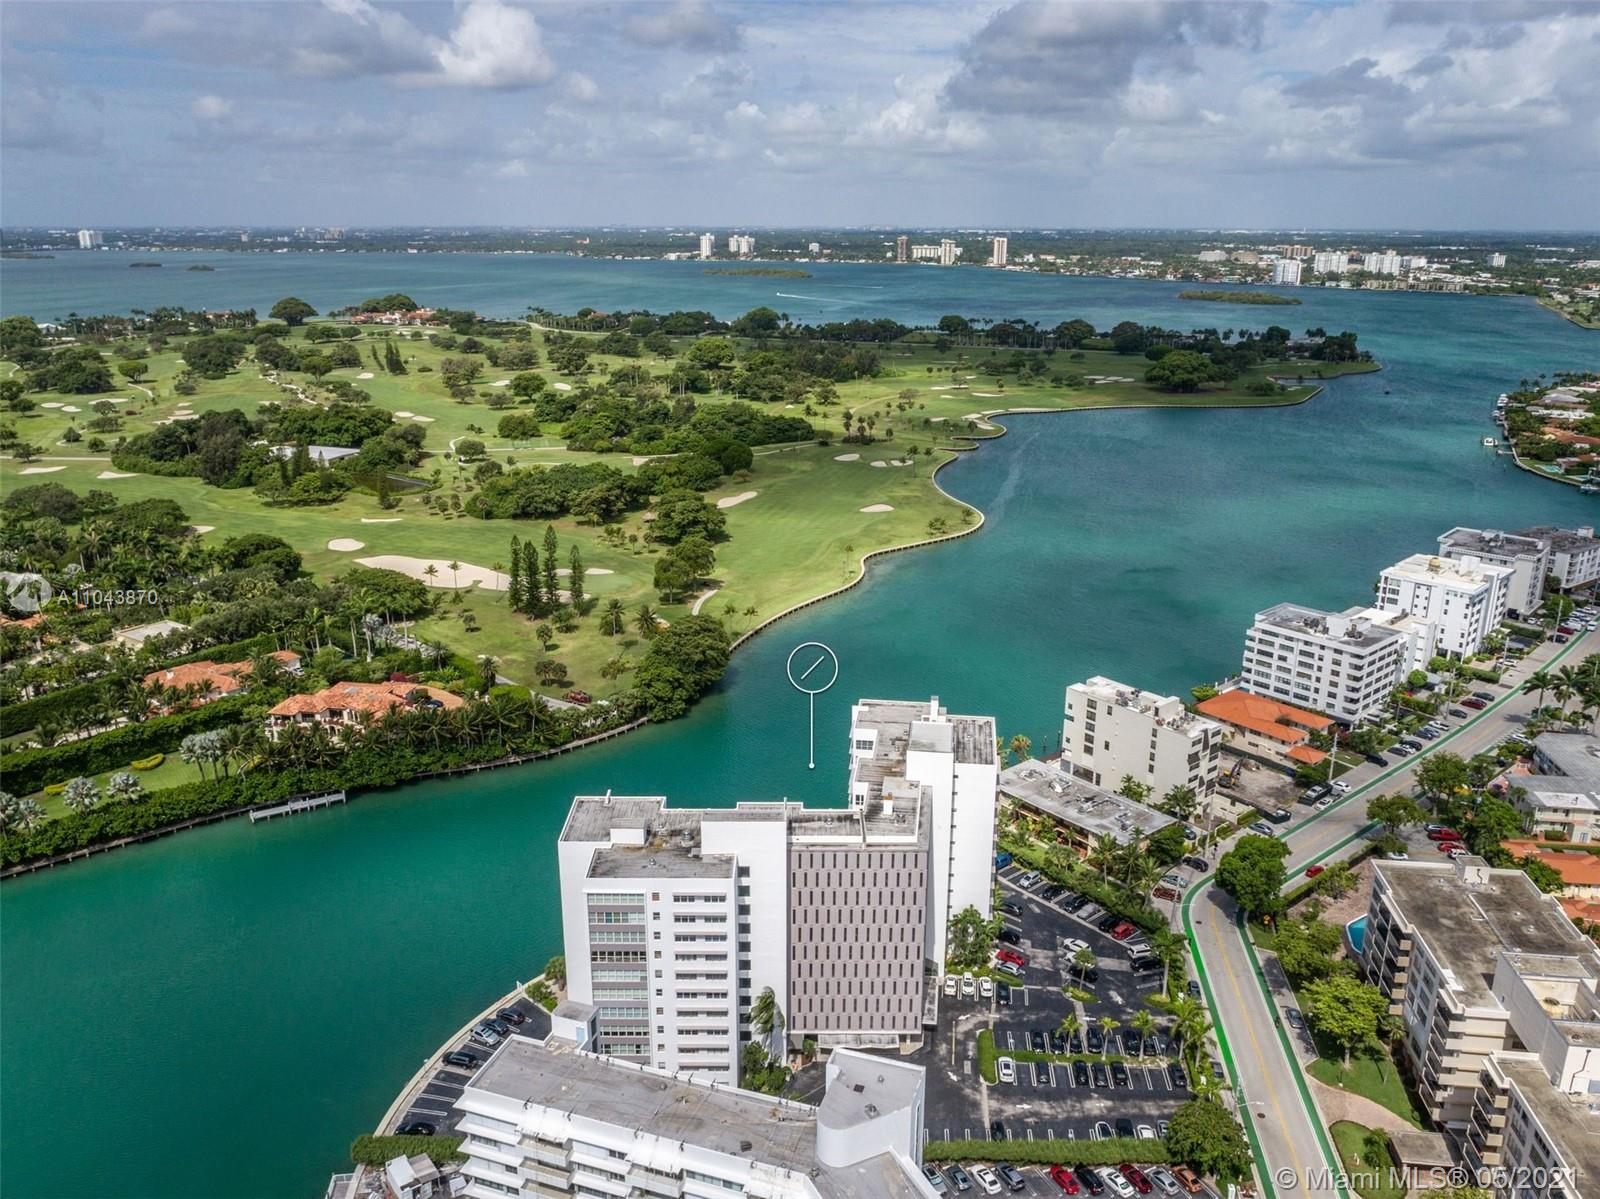 Enjoy spectacular views from this 1,770sf 2 bed/2.5 bath corner unit. Completely renovated with all the modern finishes. Updated kitchen with stainless steel appliances. Open floor plan allowing you to see Biscayne Bay, Indian Creek Country Club, Miami skyline and more. LED lighting. Conveniently located to Bal Harbor Shops, Surfside and the beaches. Community boat dock.  A rated K-8 public school 2 blocks away. HOA includes AC and hot water.